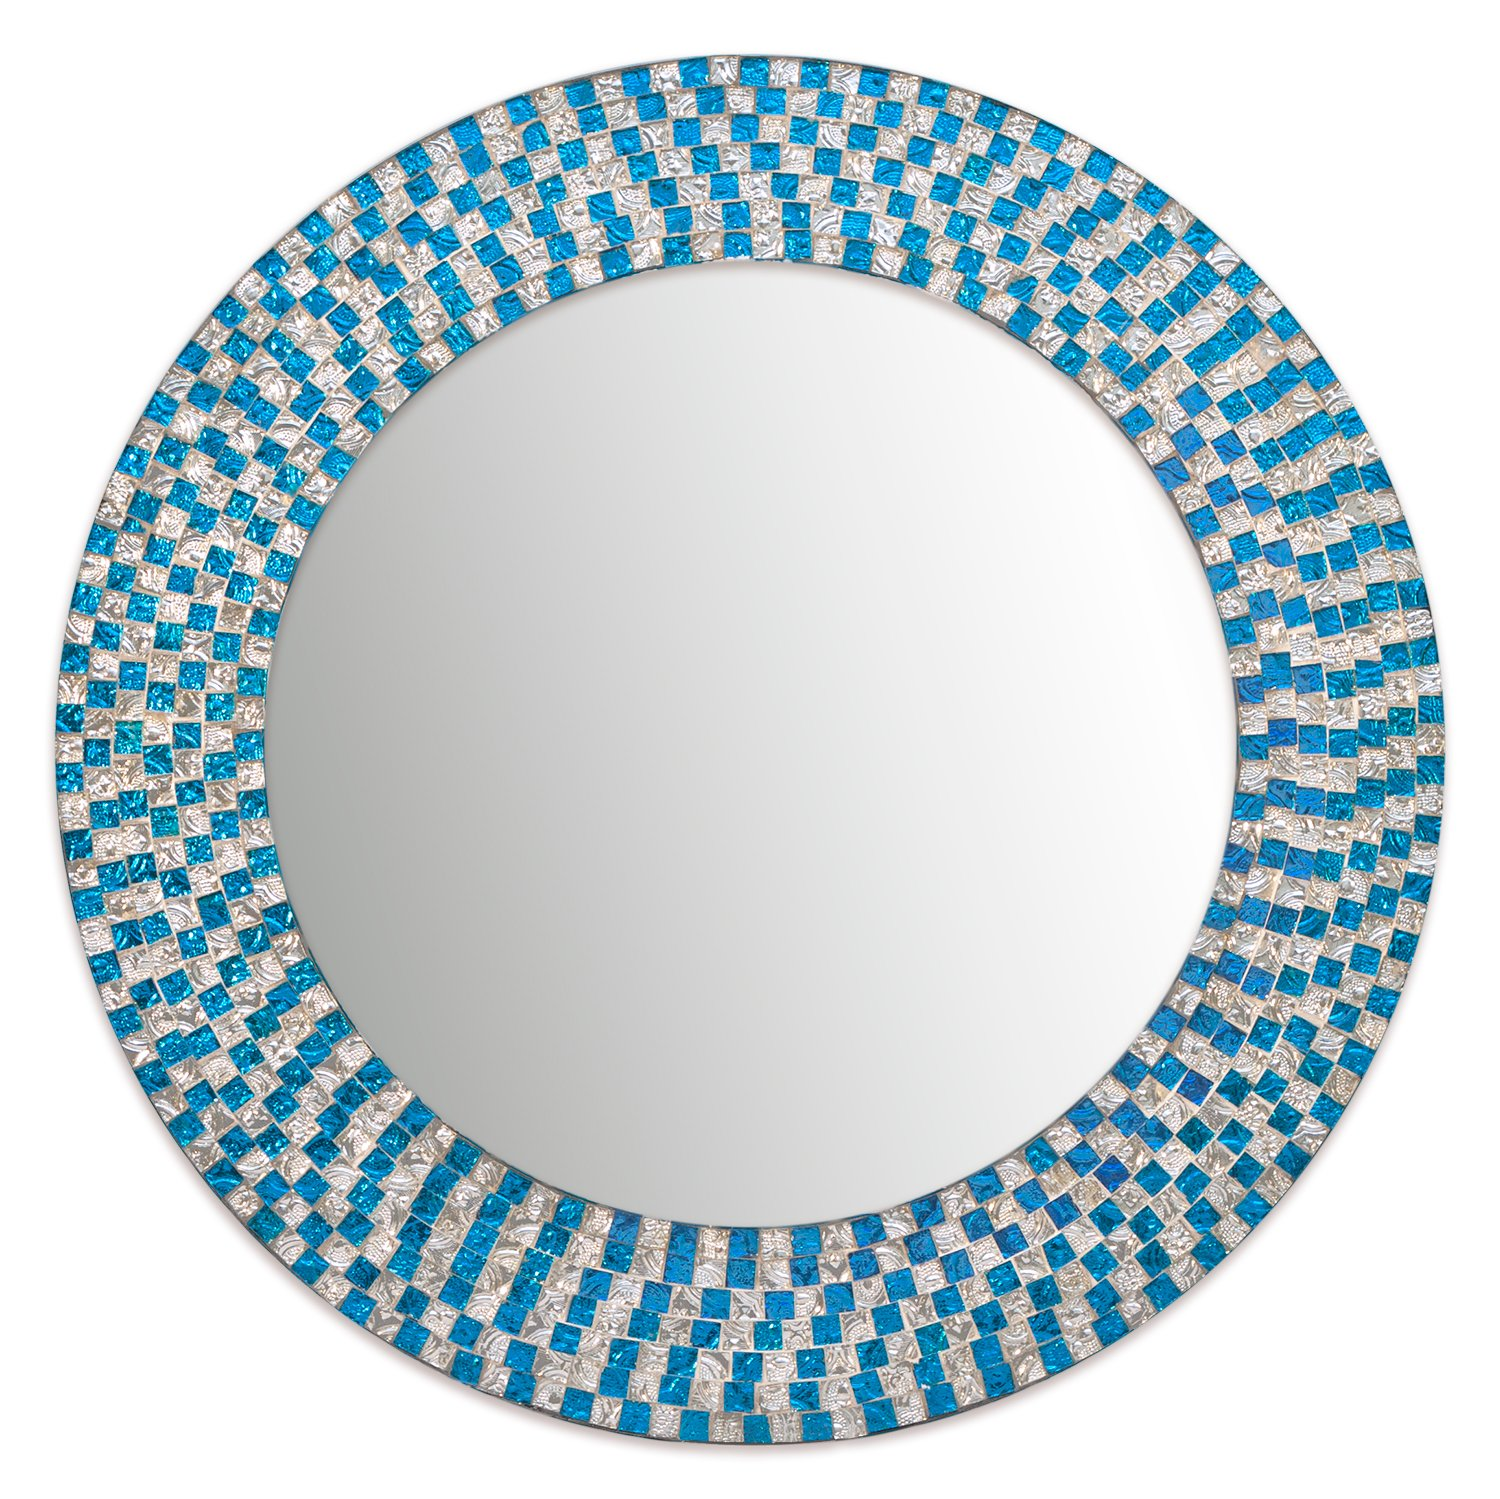 Decors 20 Inch Framed Decorative Turquoise Wall Mirror Jewel Tone Accent Round